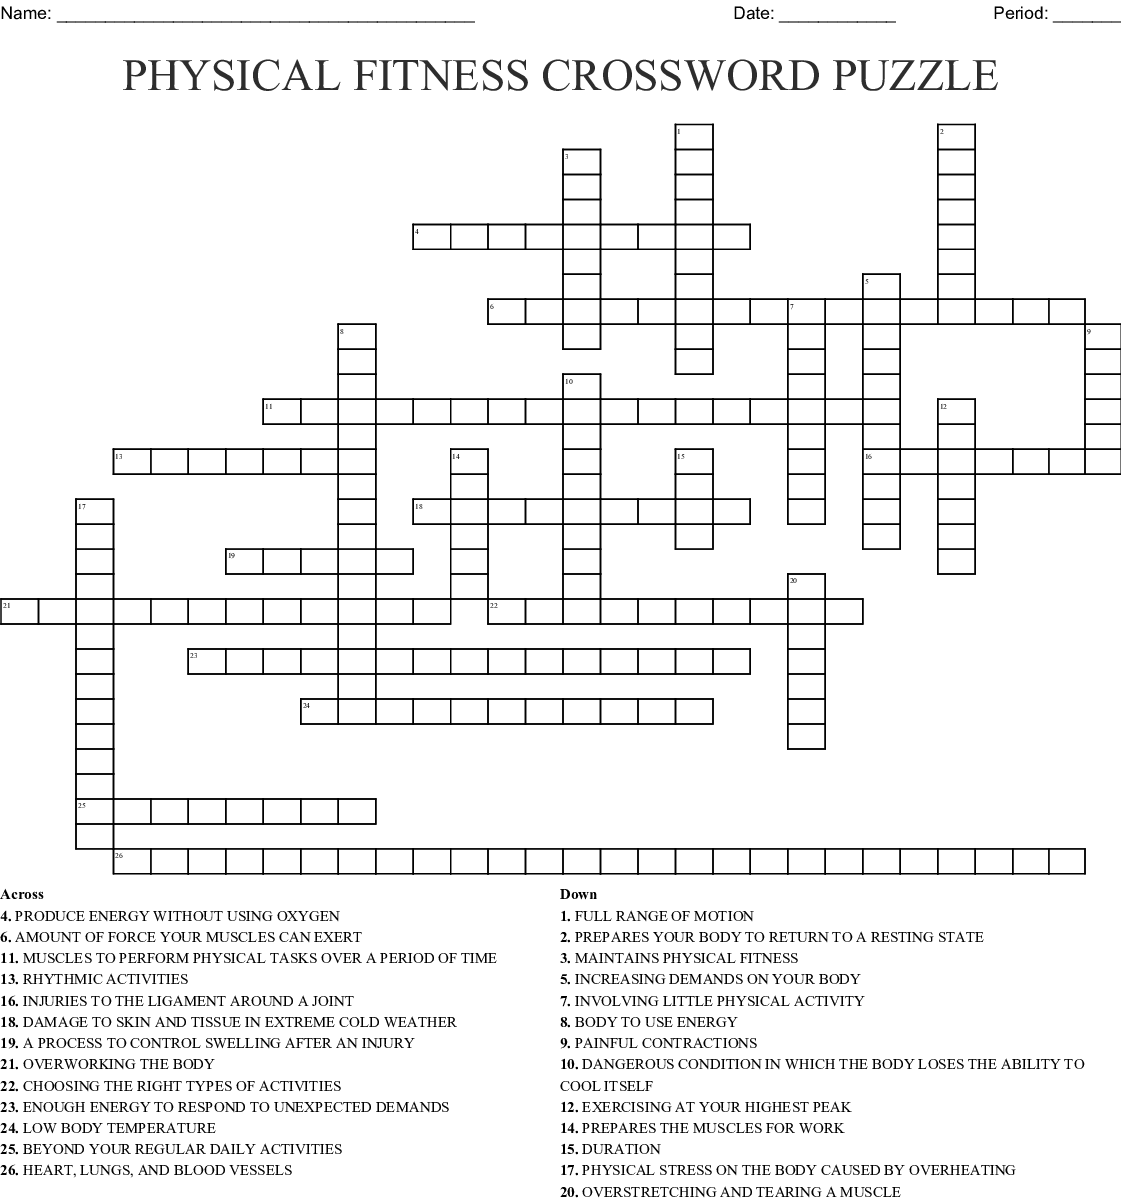 Physical Fitness Crossword Puzzle